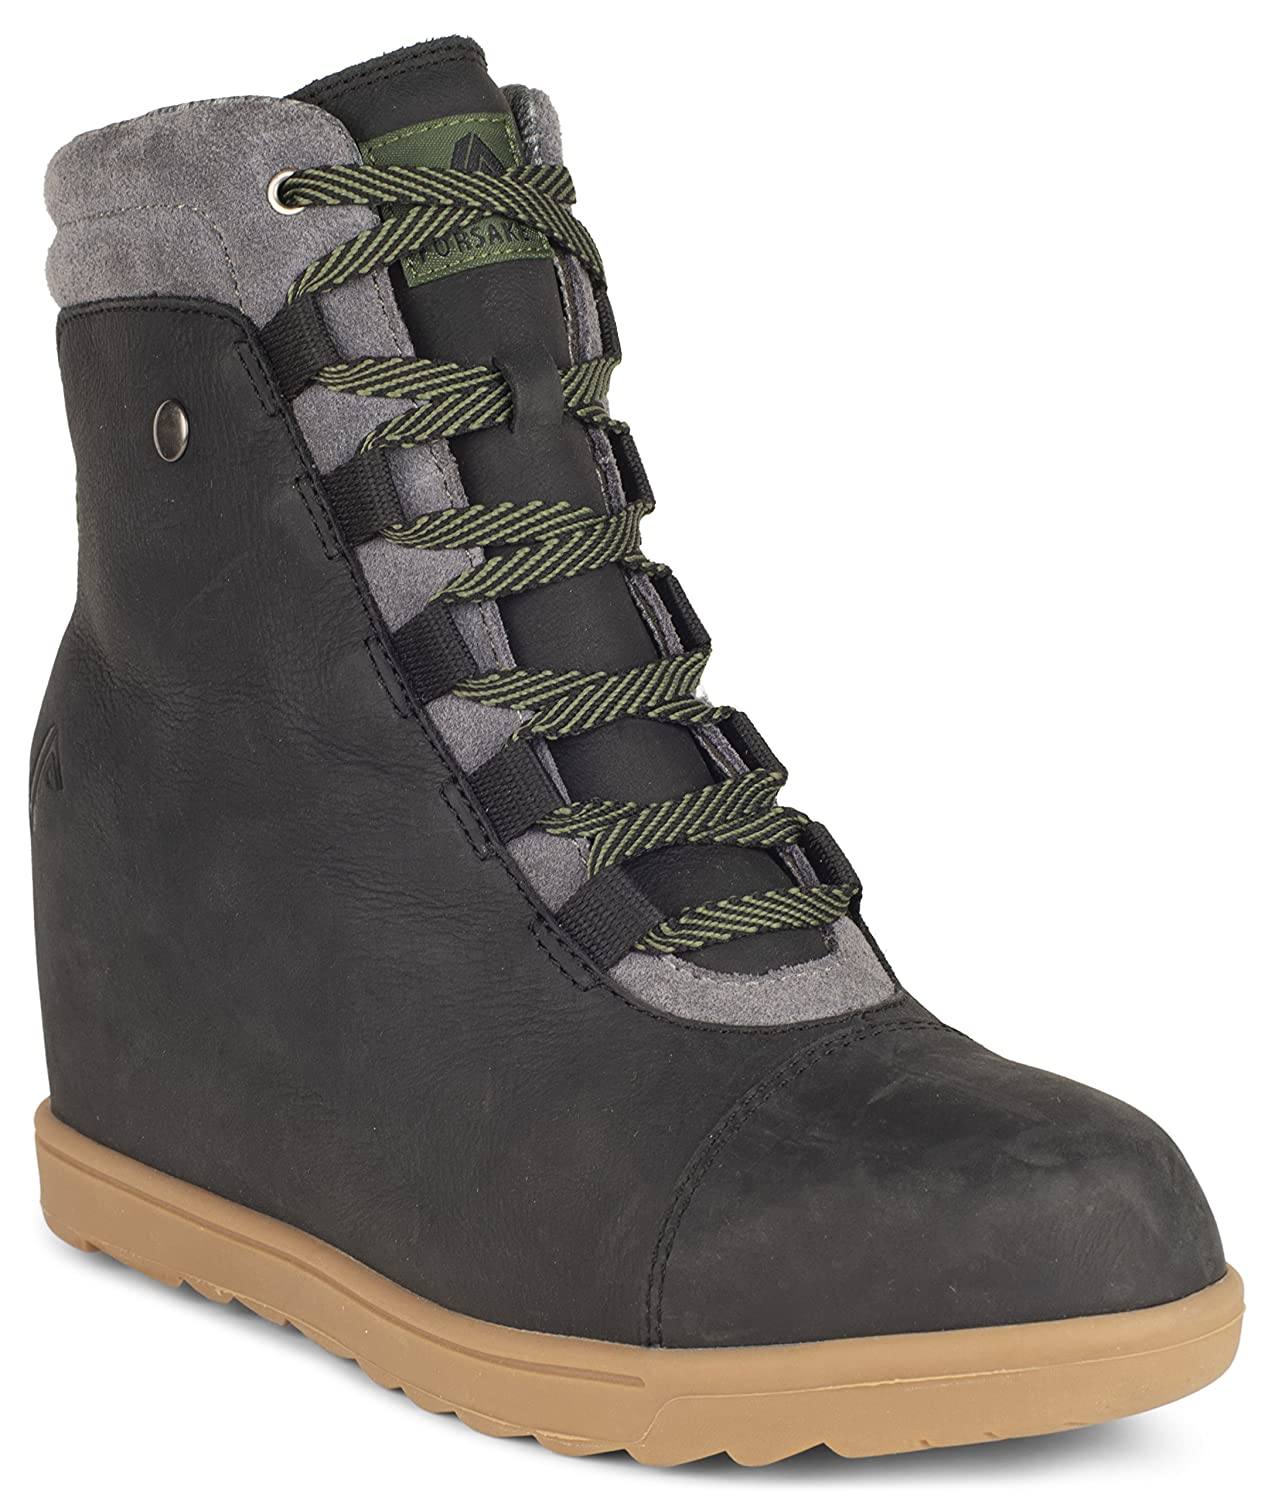 Forsake Alma – Women's Leather Wedge Water-Resistant Boot B075Y9VQ9V 8.5 M US|Black